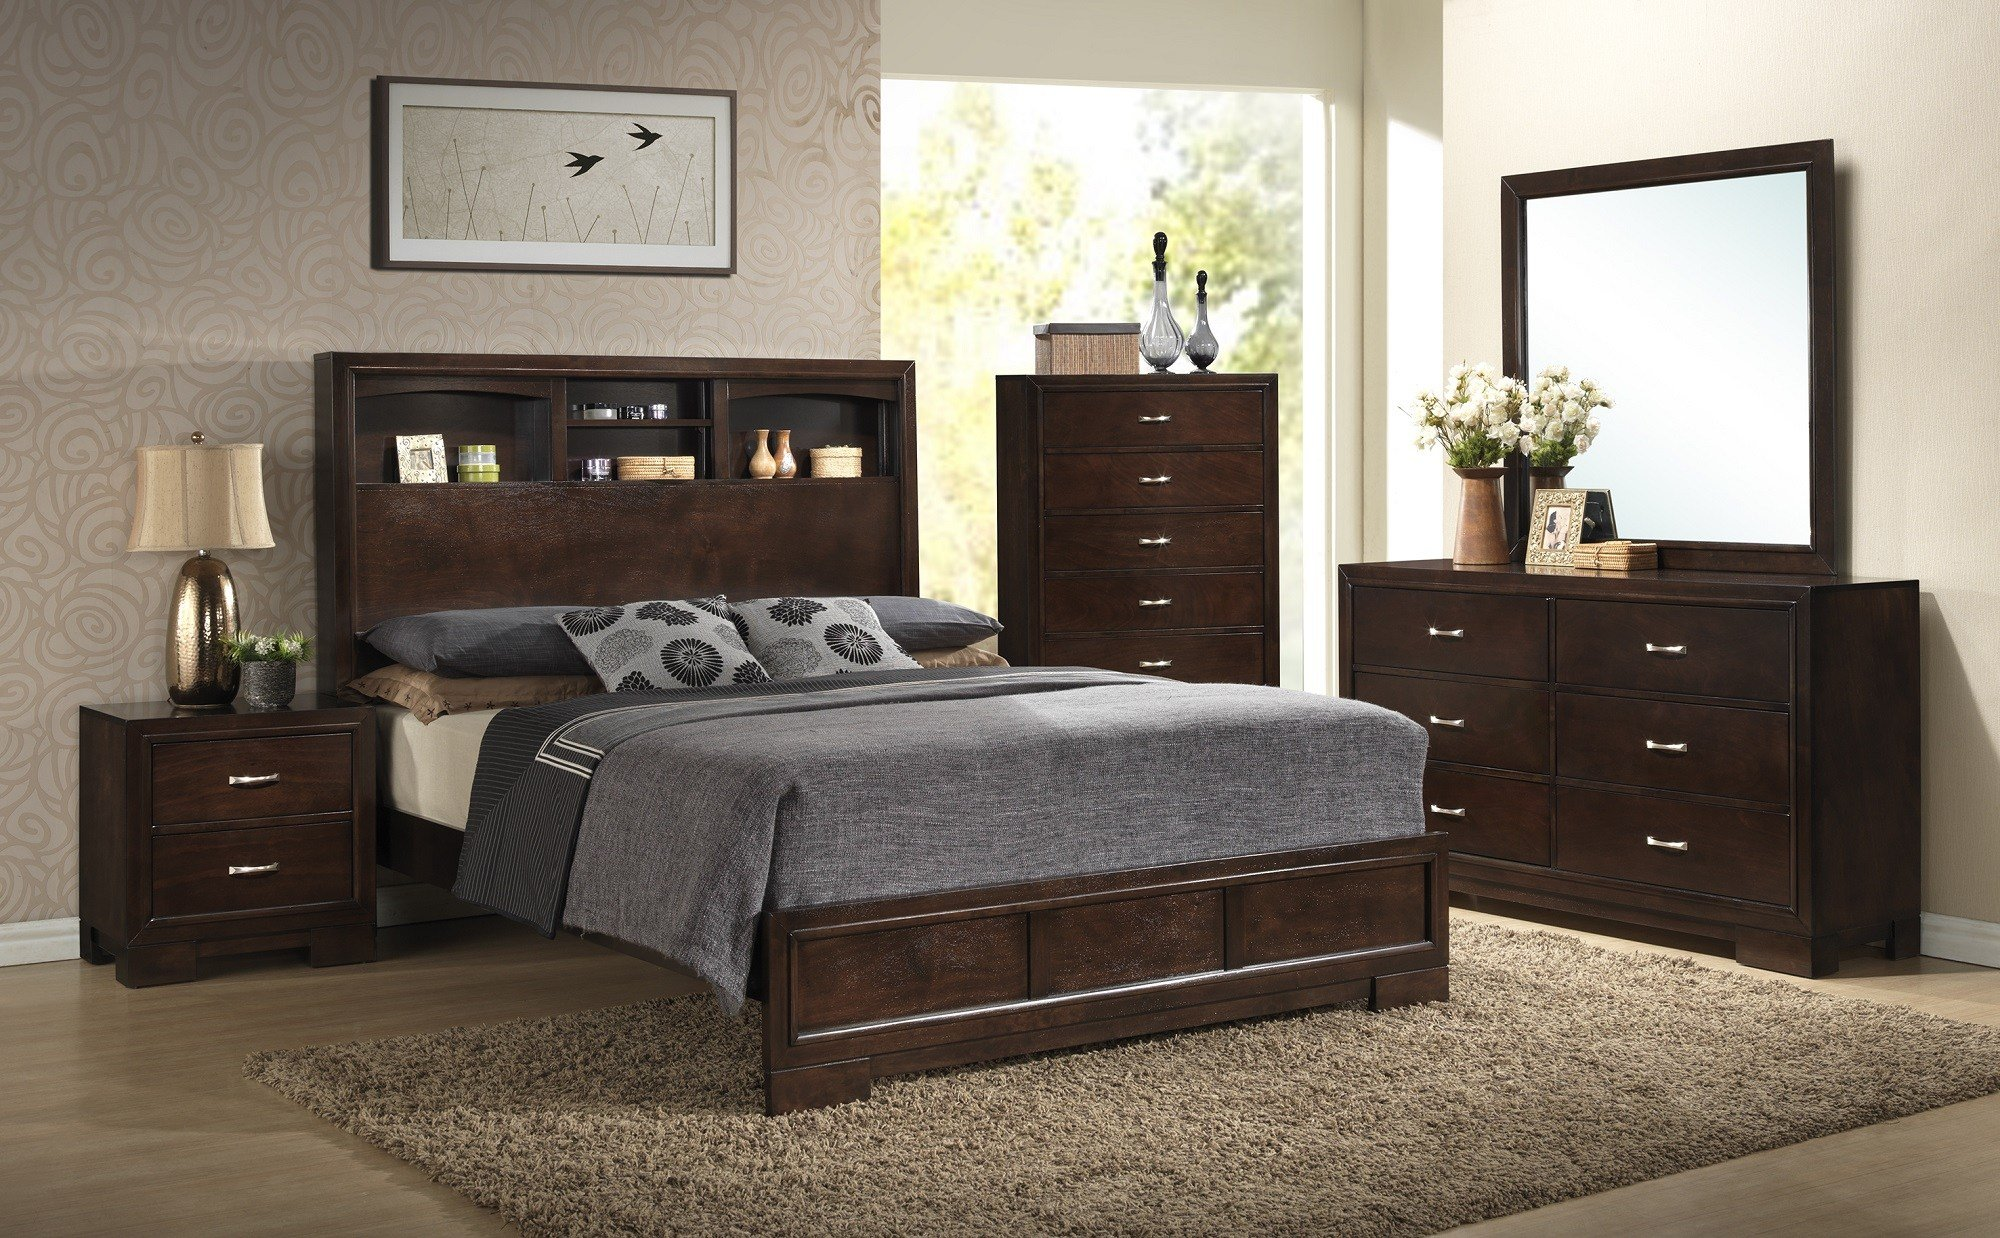 Best Denver Bedroom Set Queen Nader S Furniture With Pictures